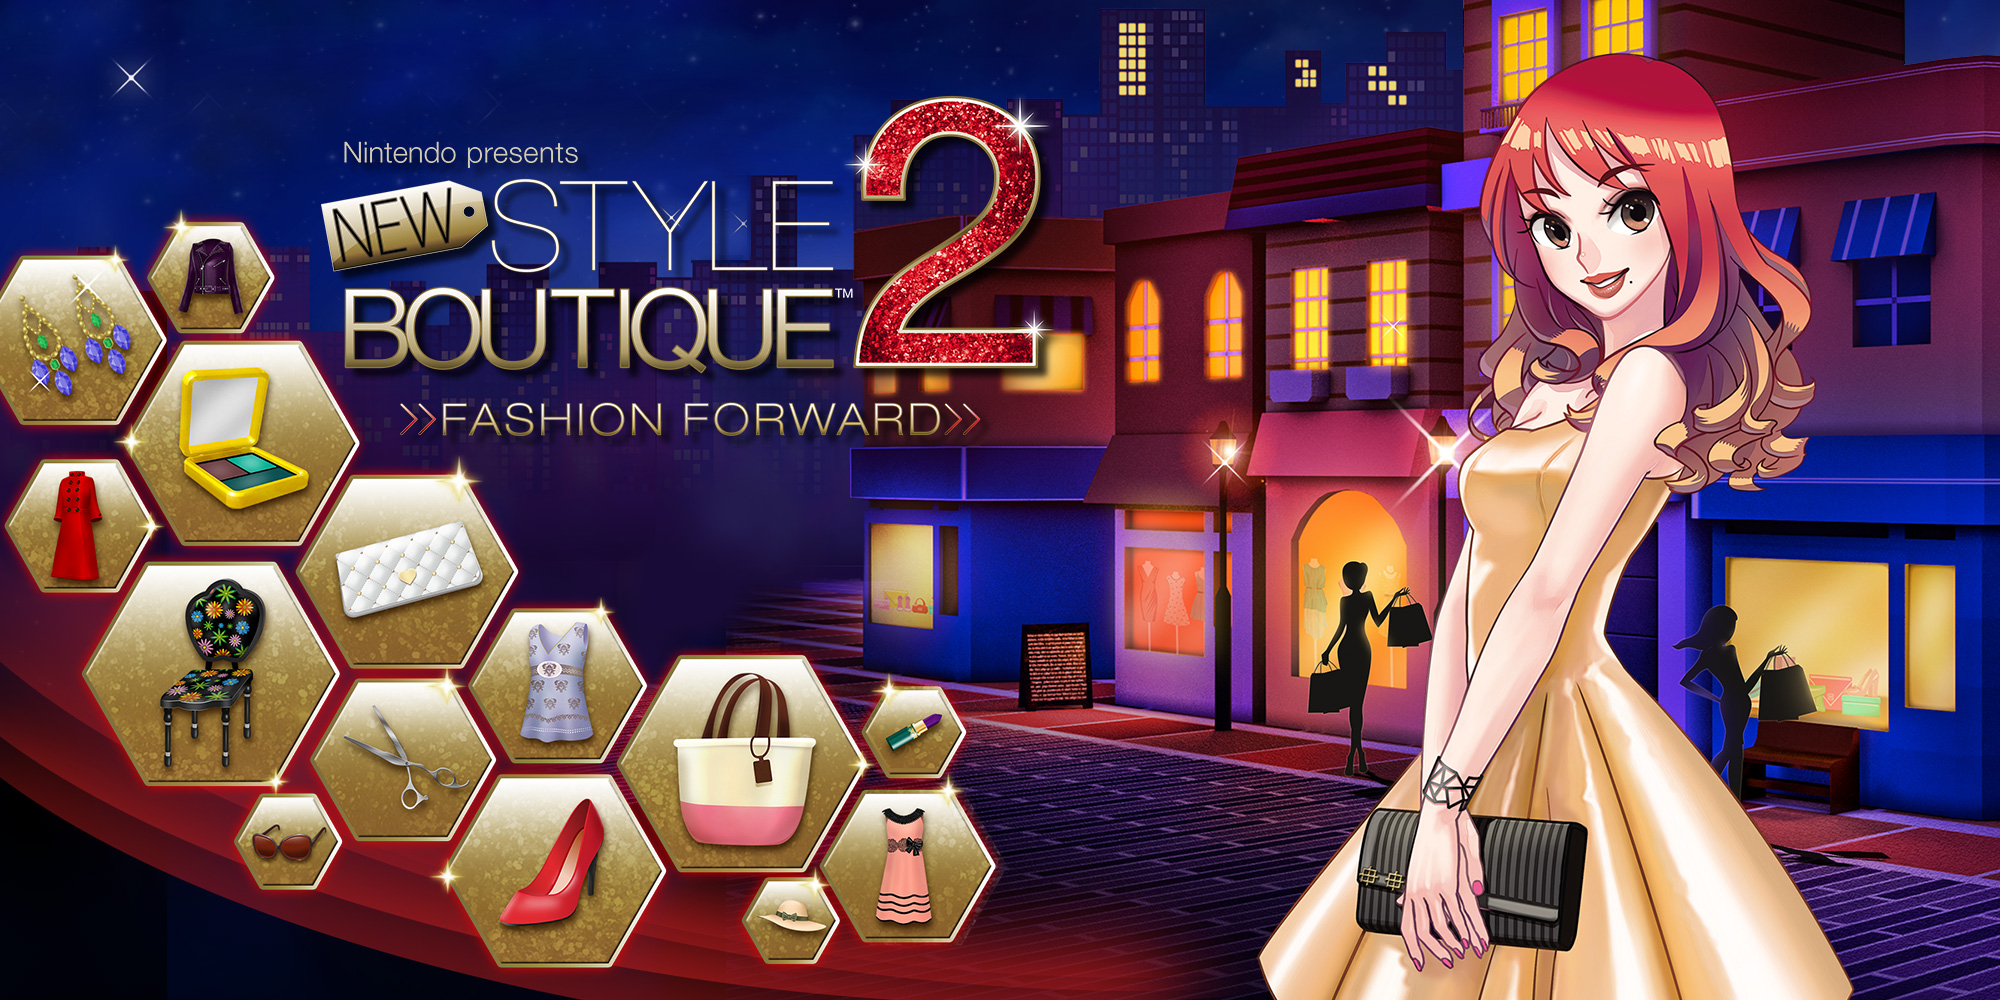 Nintendo presents new style boutique 2 fashion forward Fashion style games online